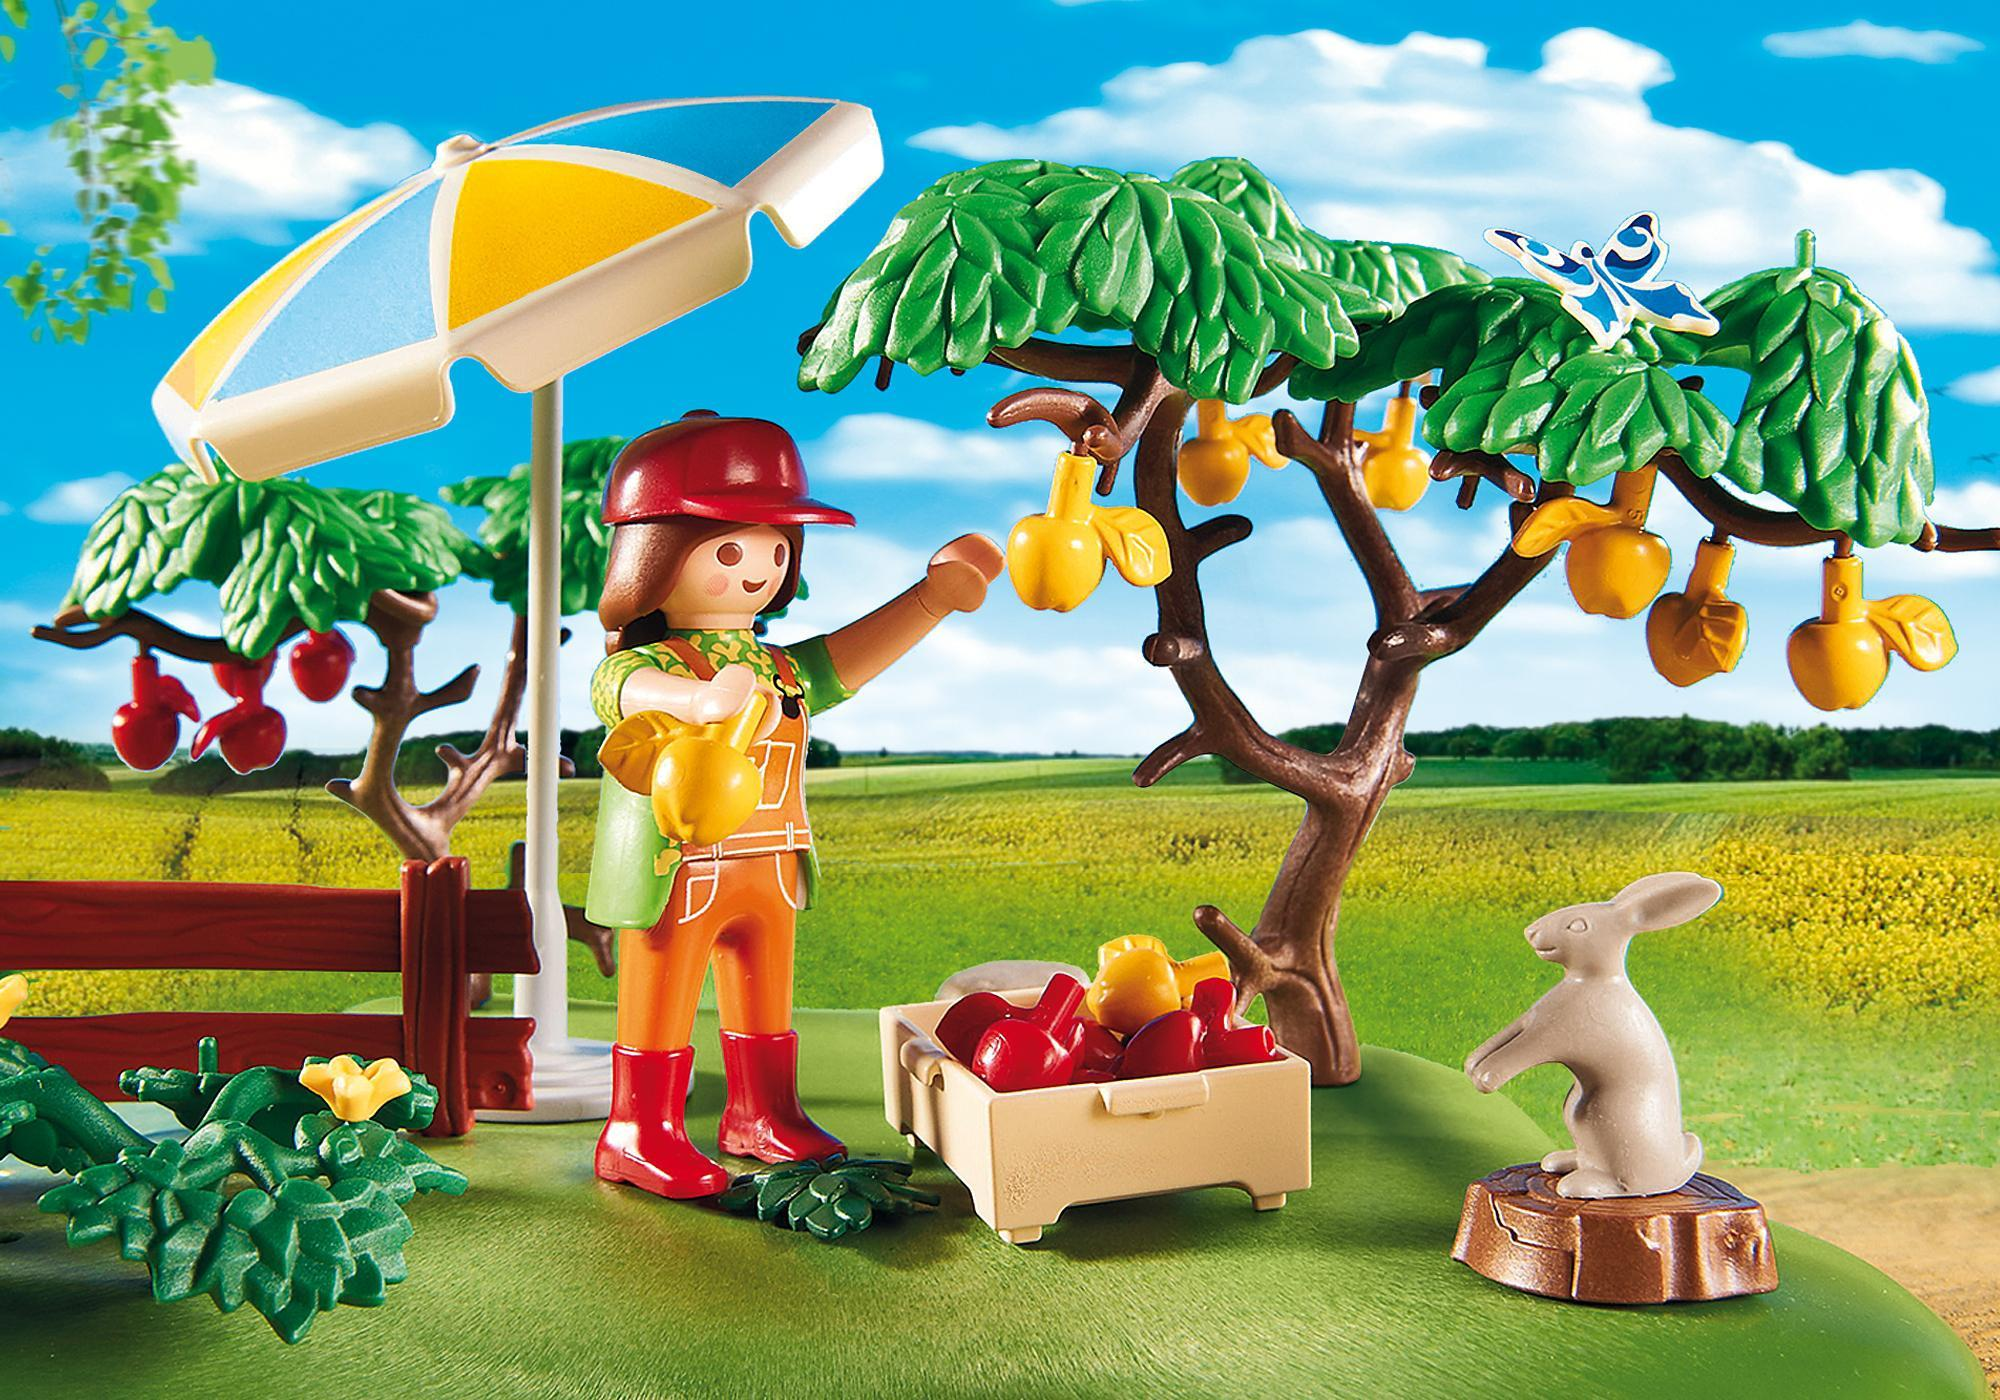 http://media.playmobil.com/i/playmobil/6870_product_extra1